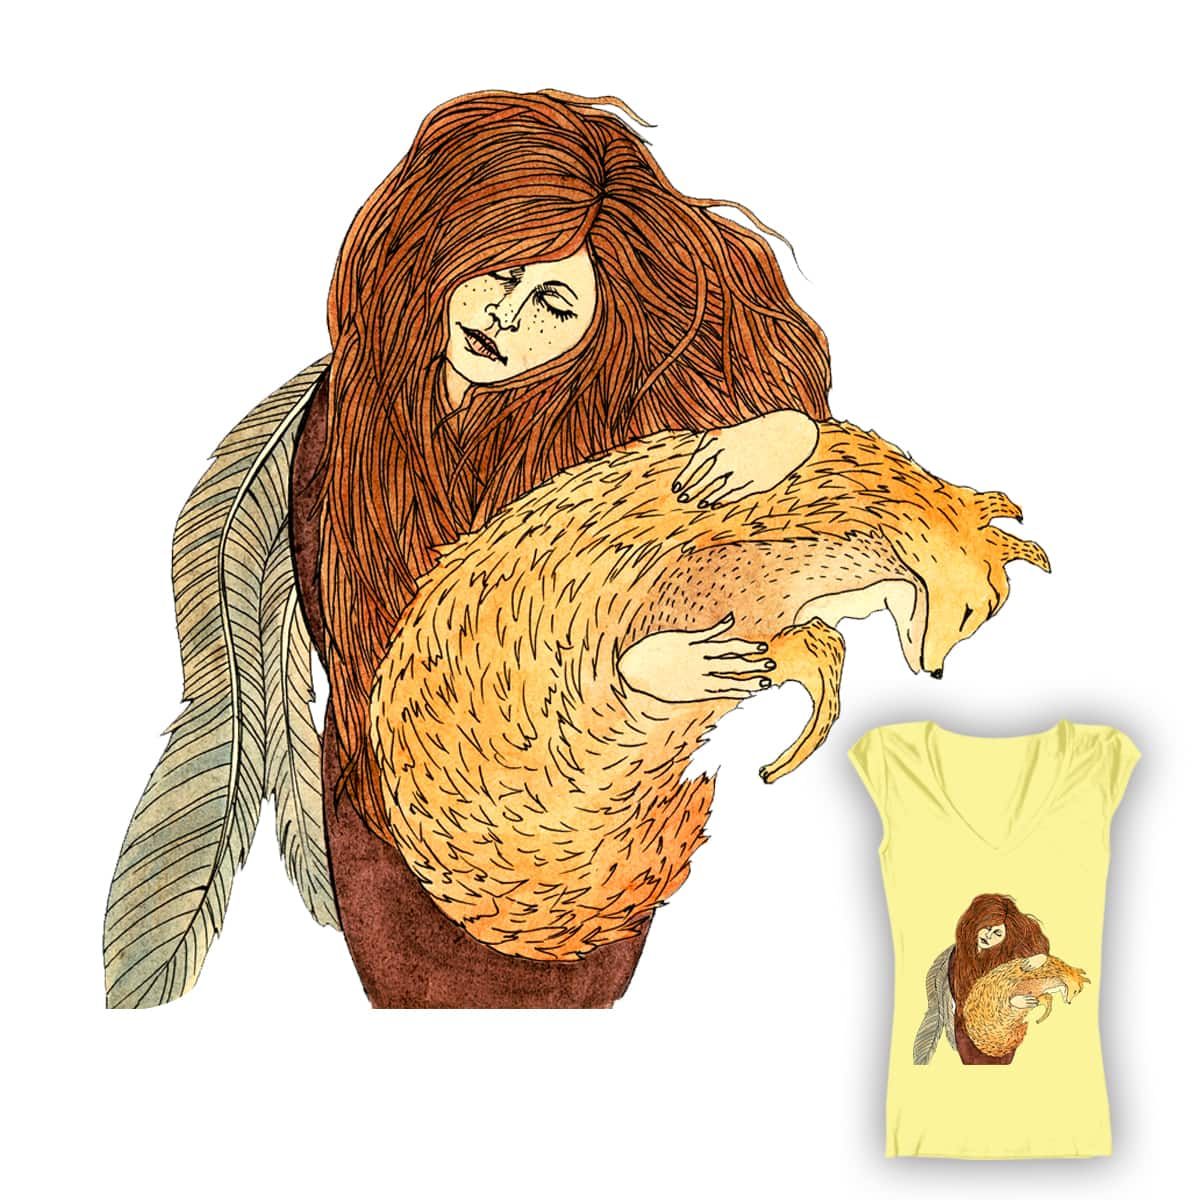 Mrs. Foxy by milk-and-honey on Threadless